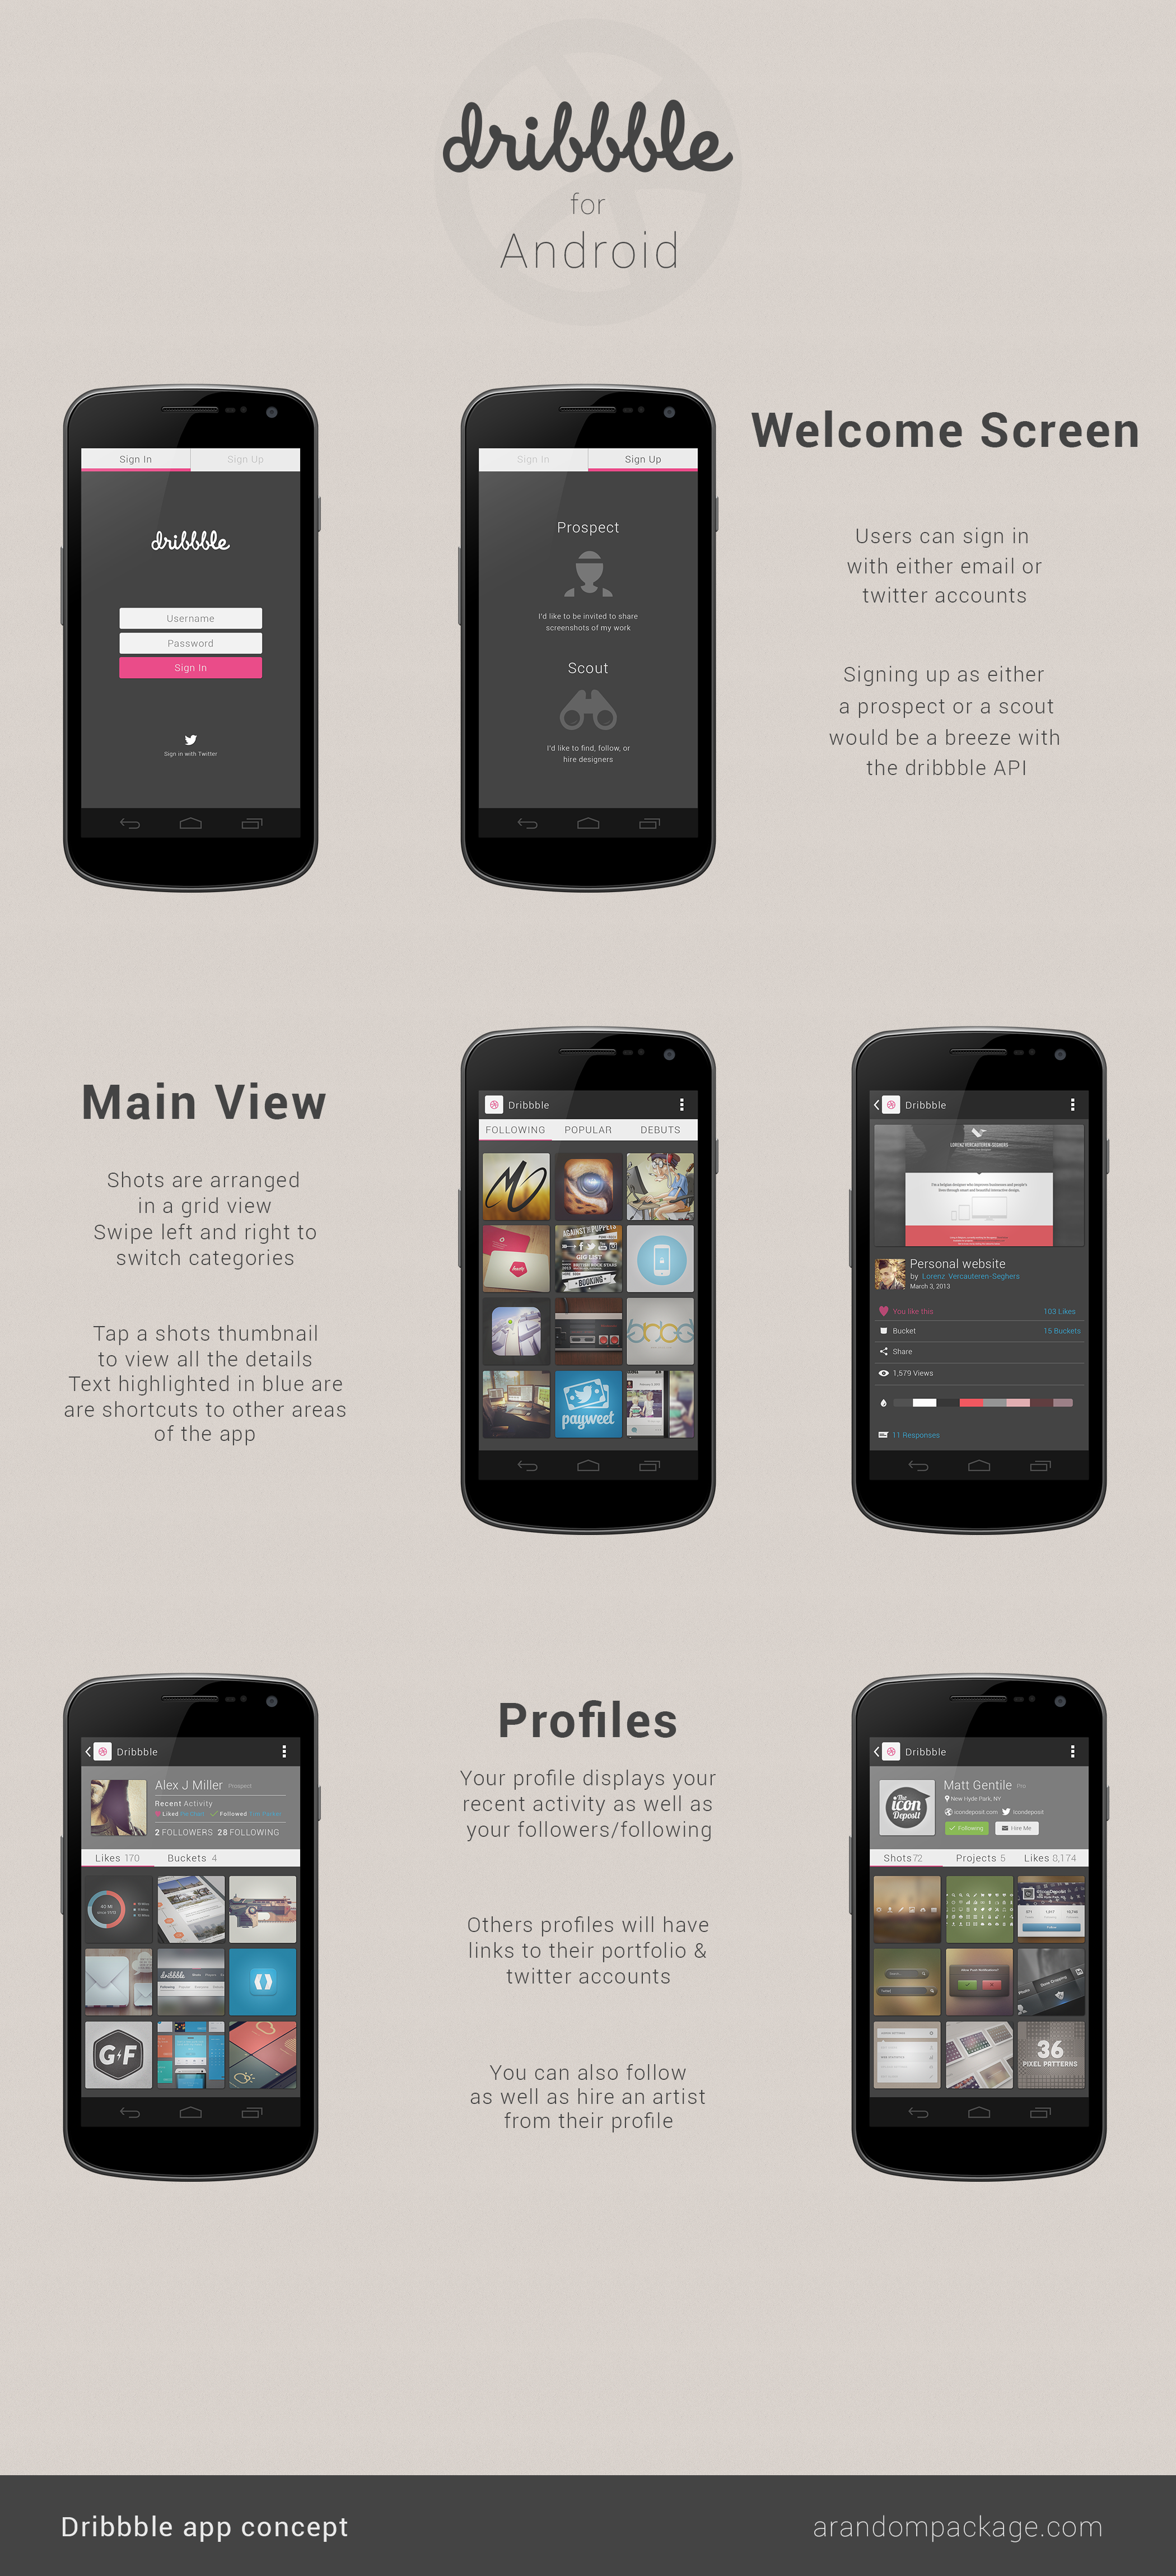 Dribble for Android Concept